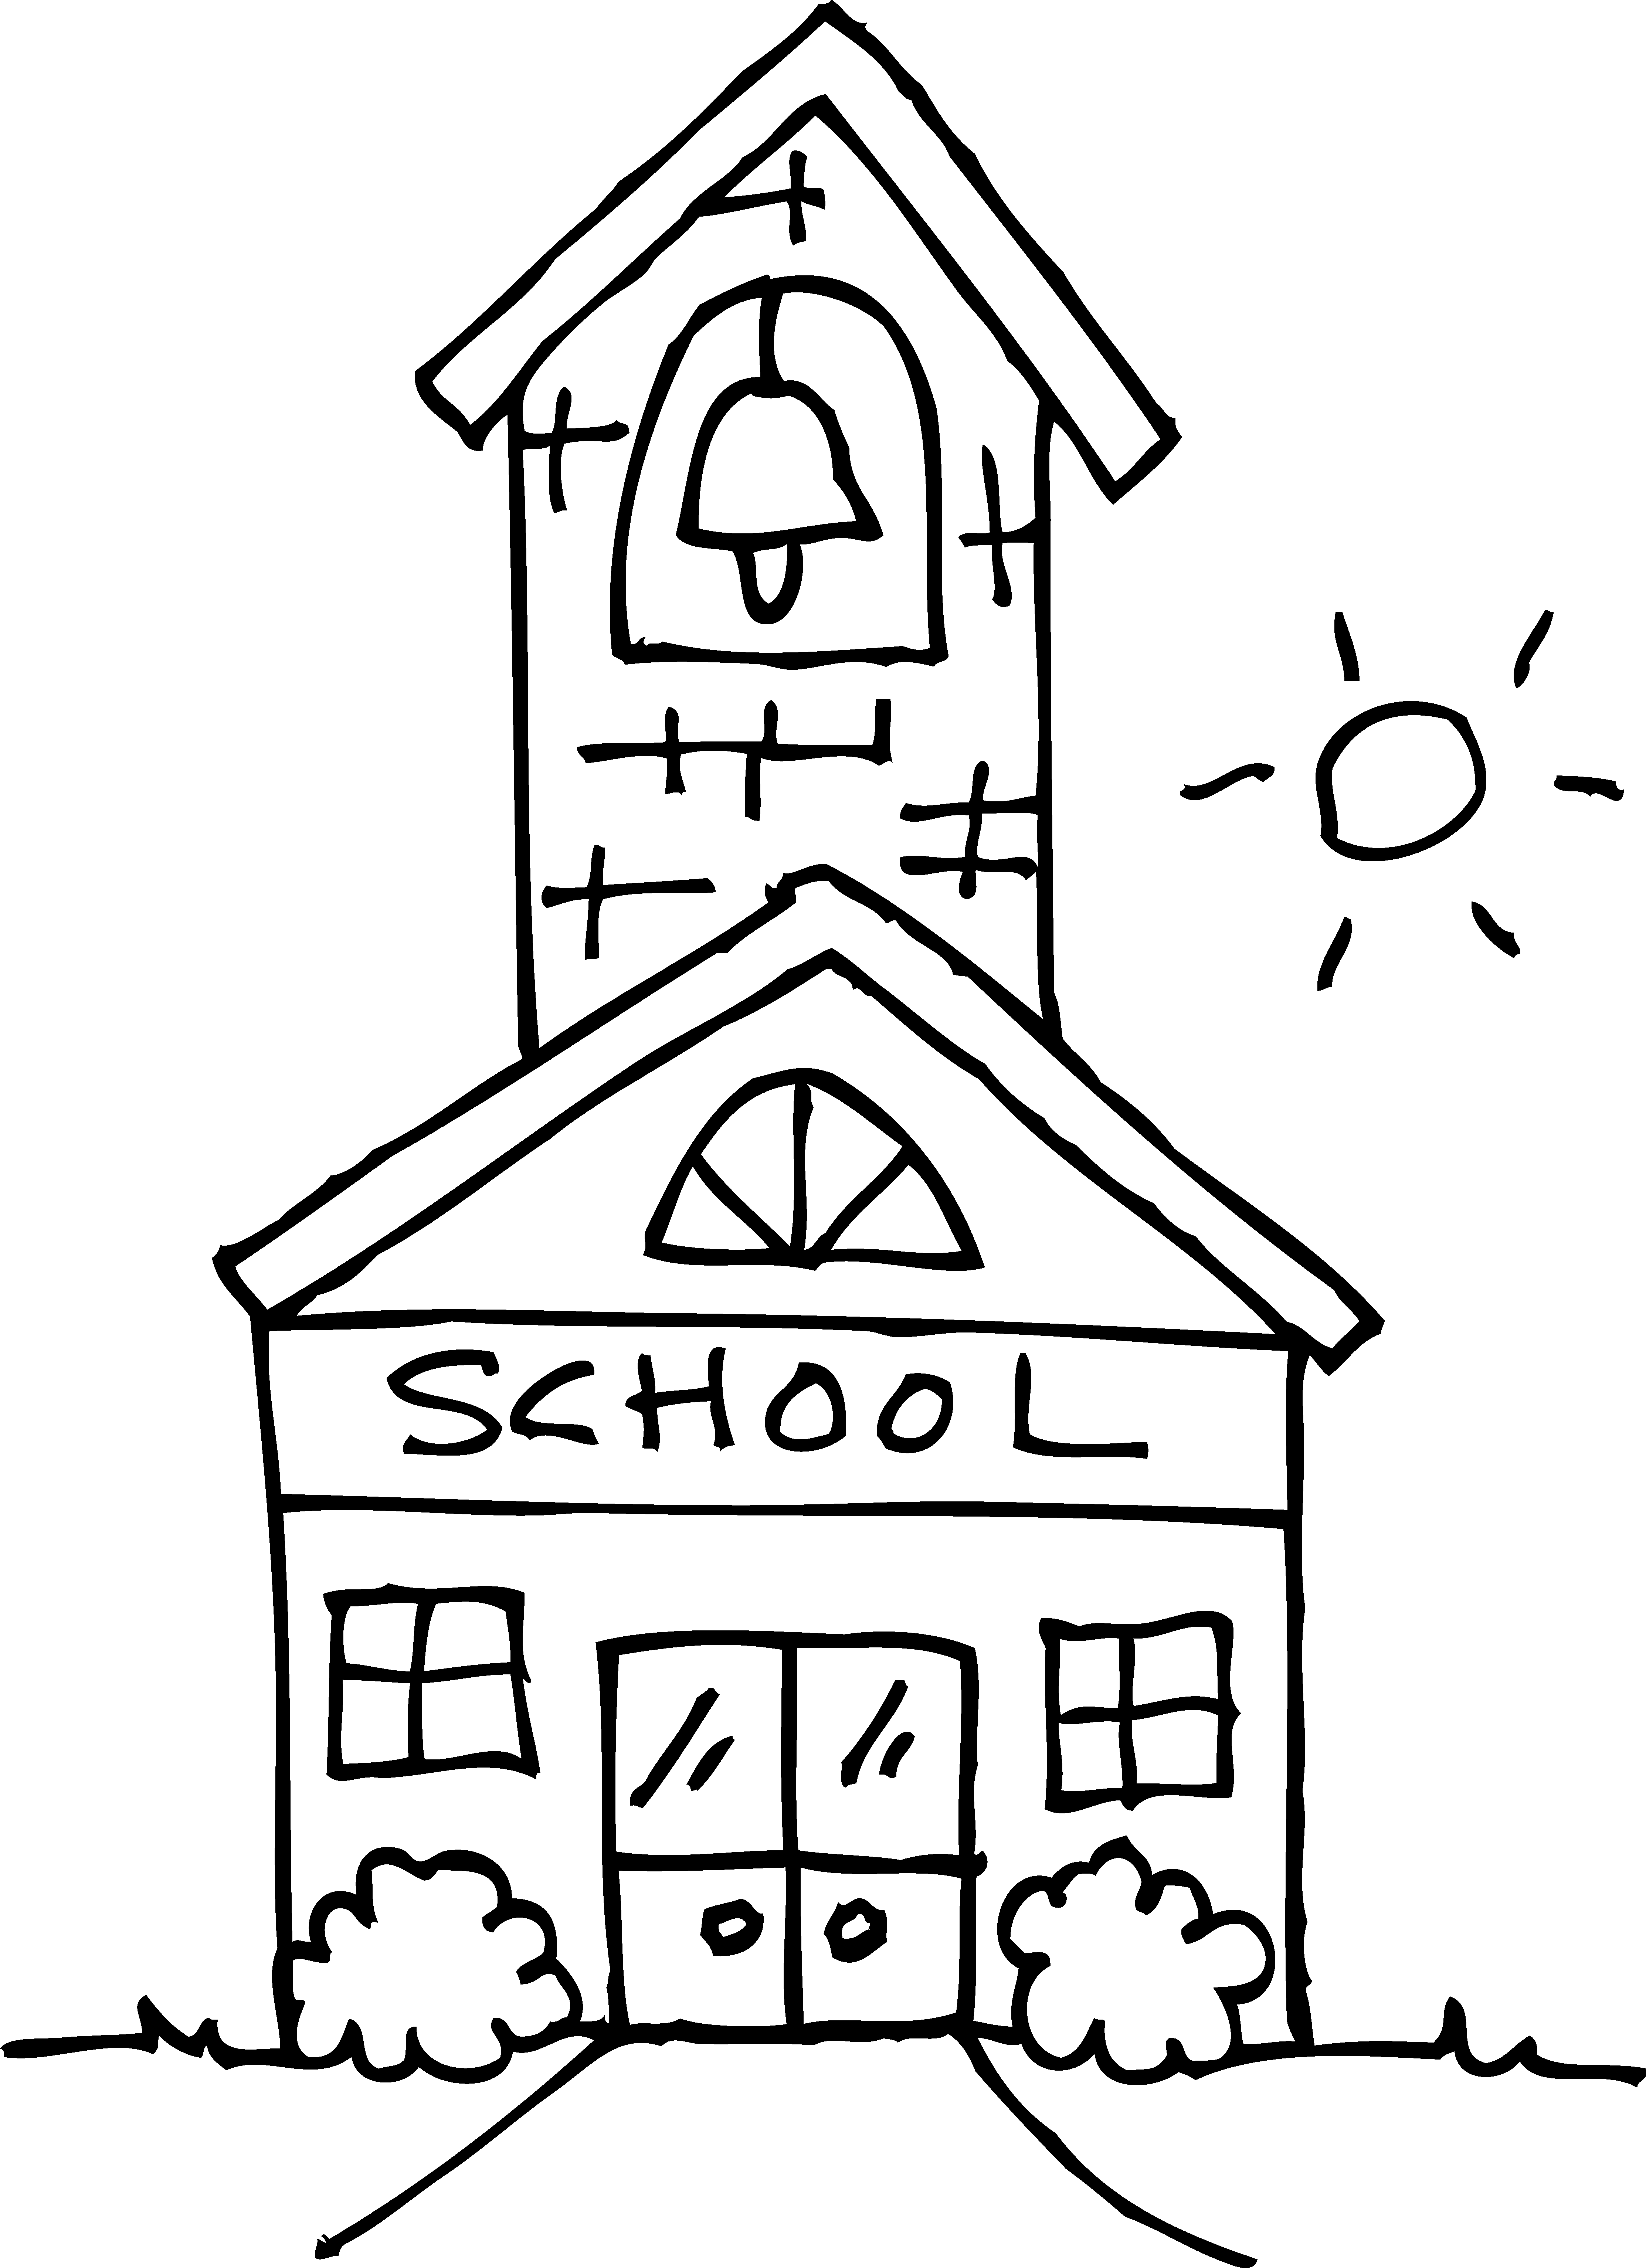 School Clipart Black And White-school clipart black and white-17